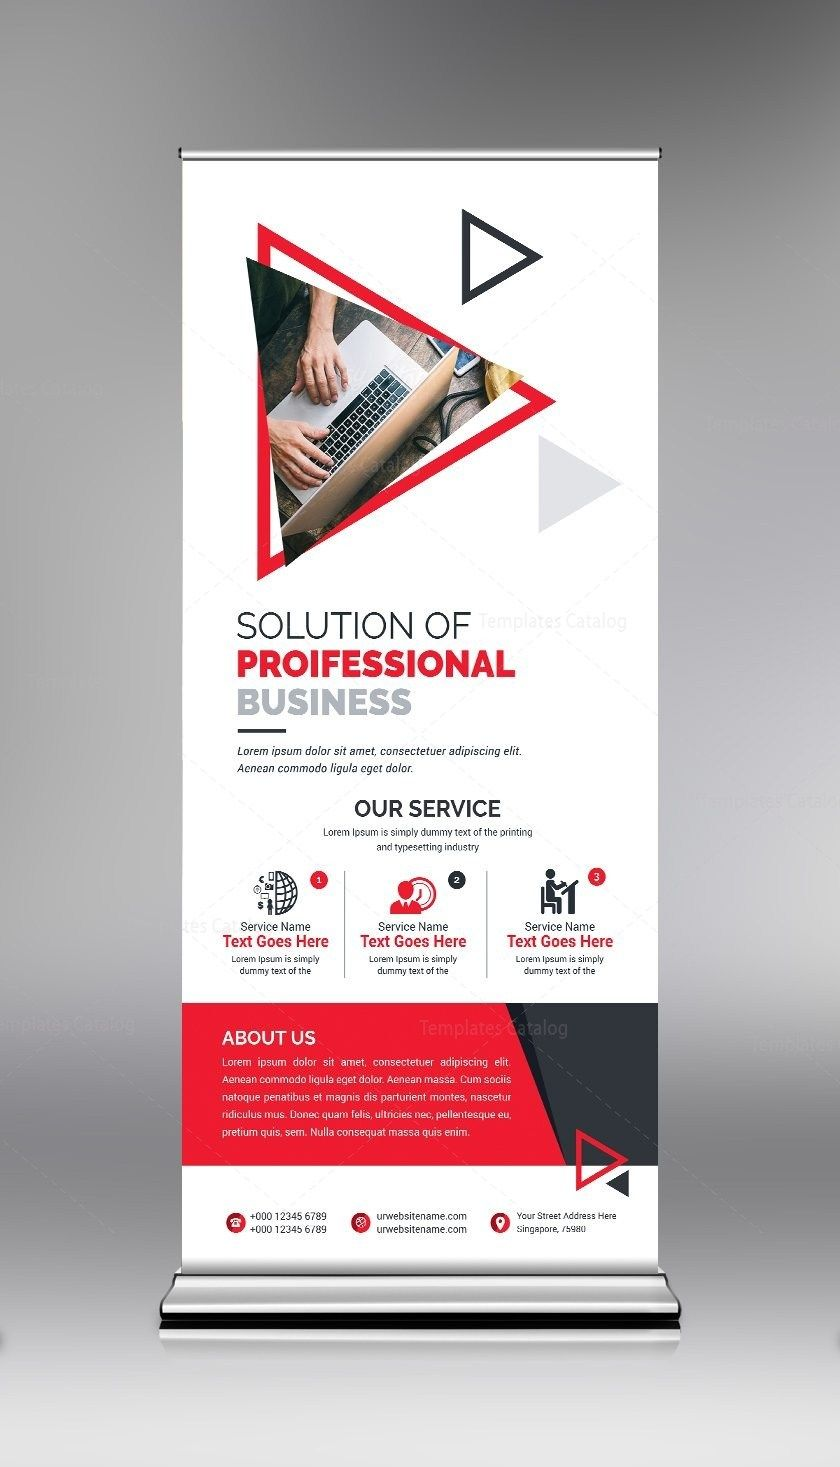 Roll Up Banner Template With Clean Design 000684 Template Catalog Rollup Banner Design Banner Template Design Pull Up Banner Design